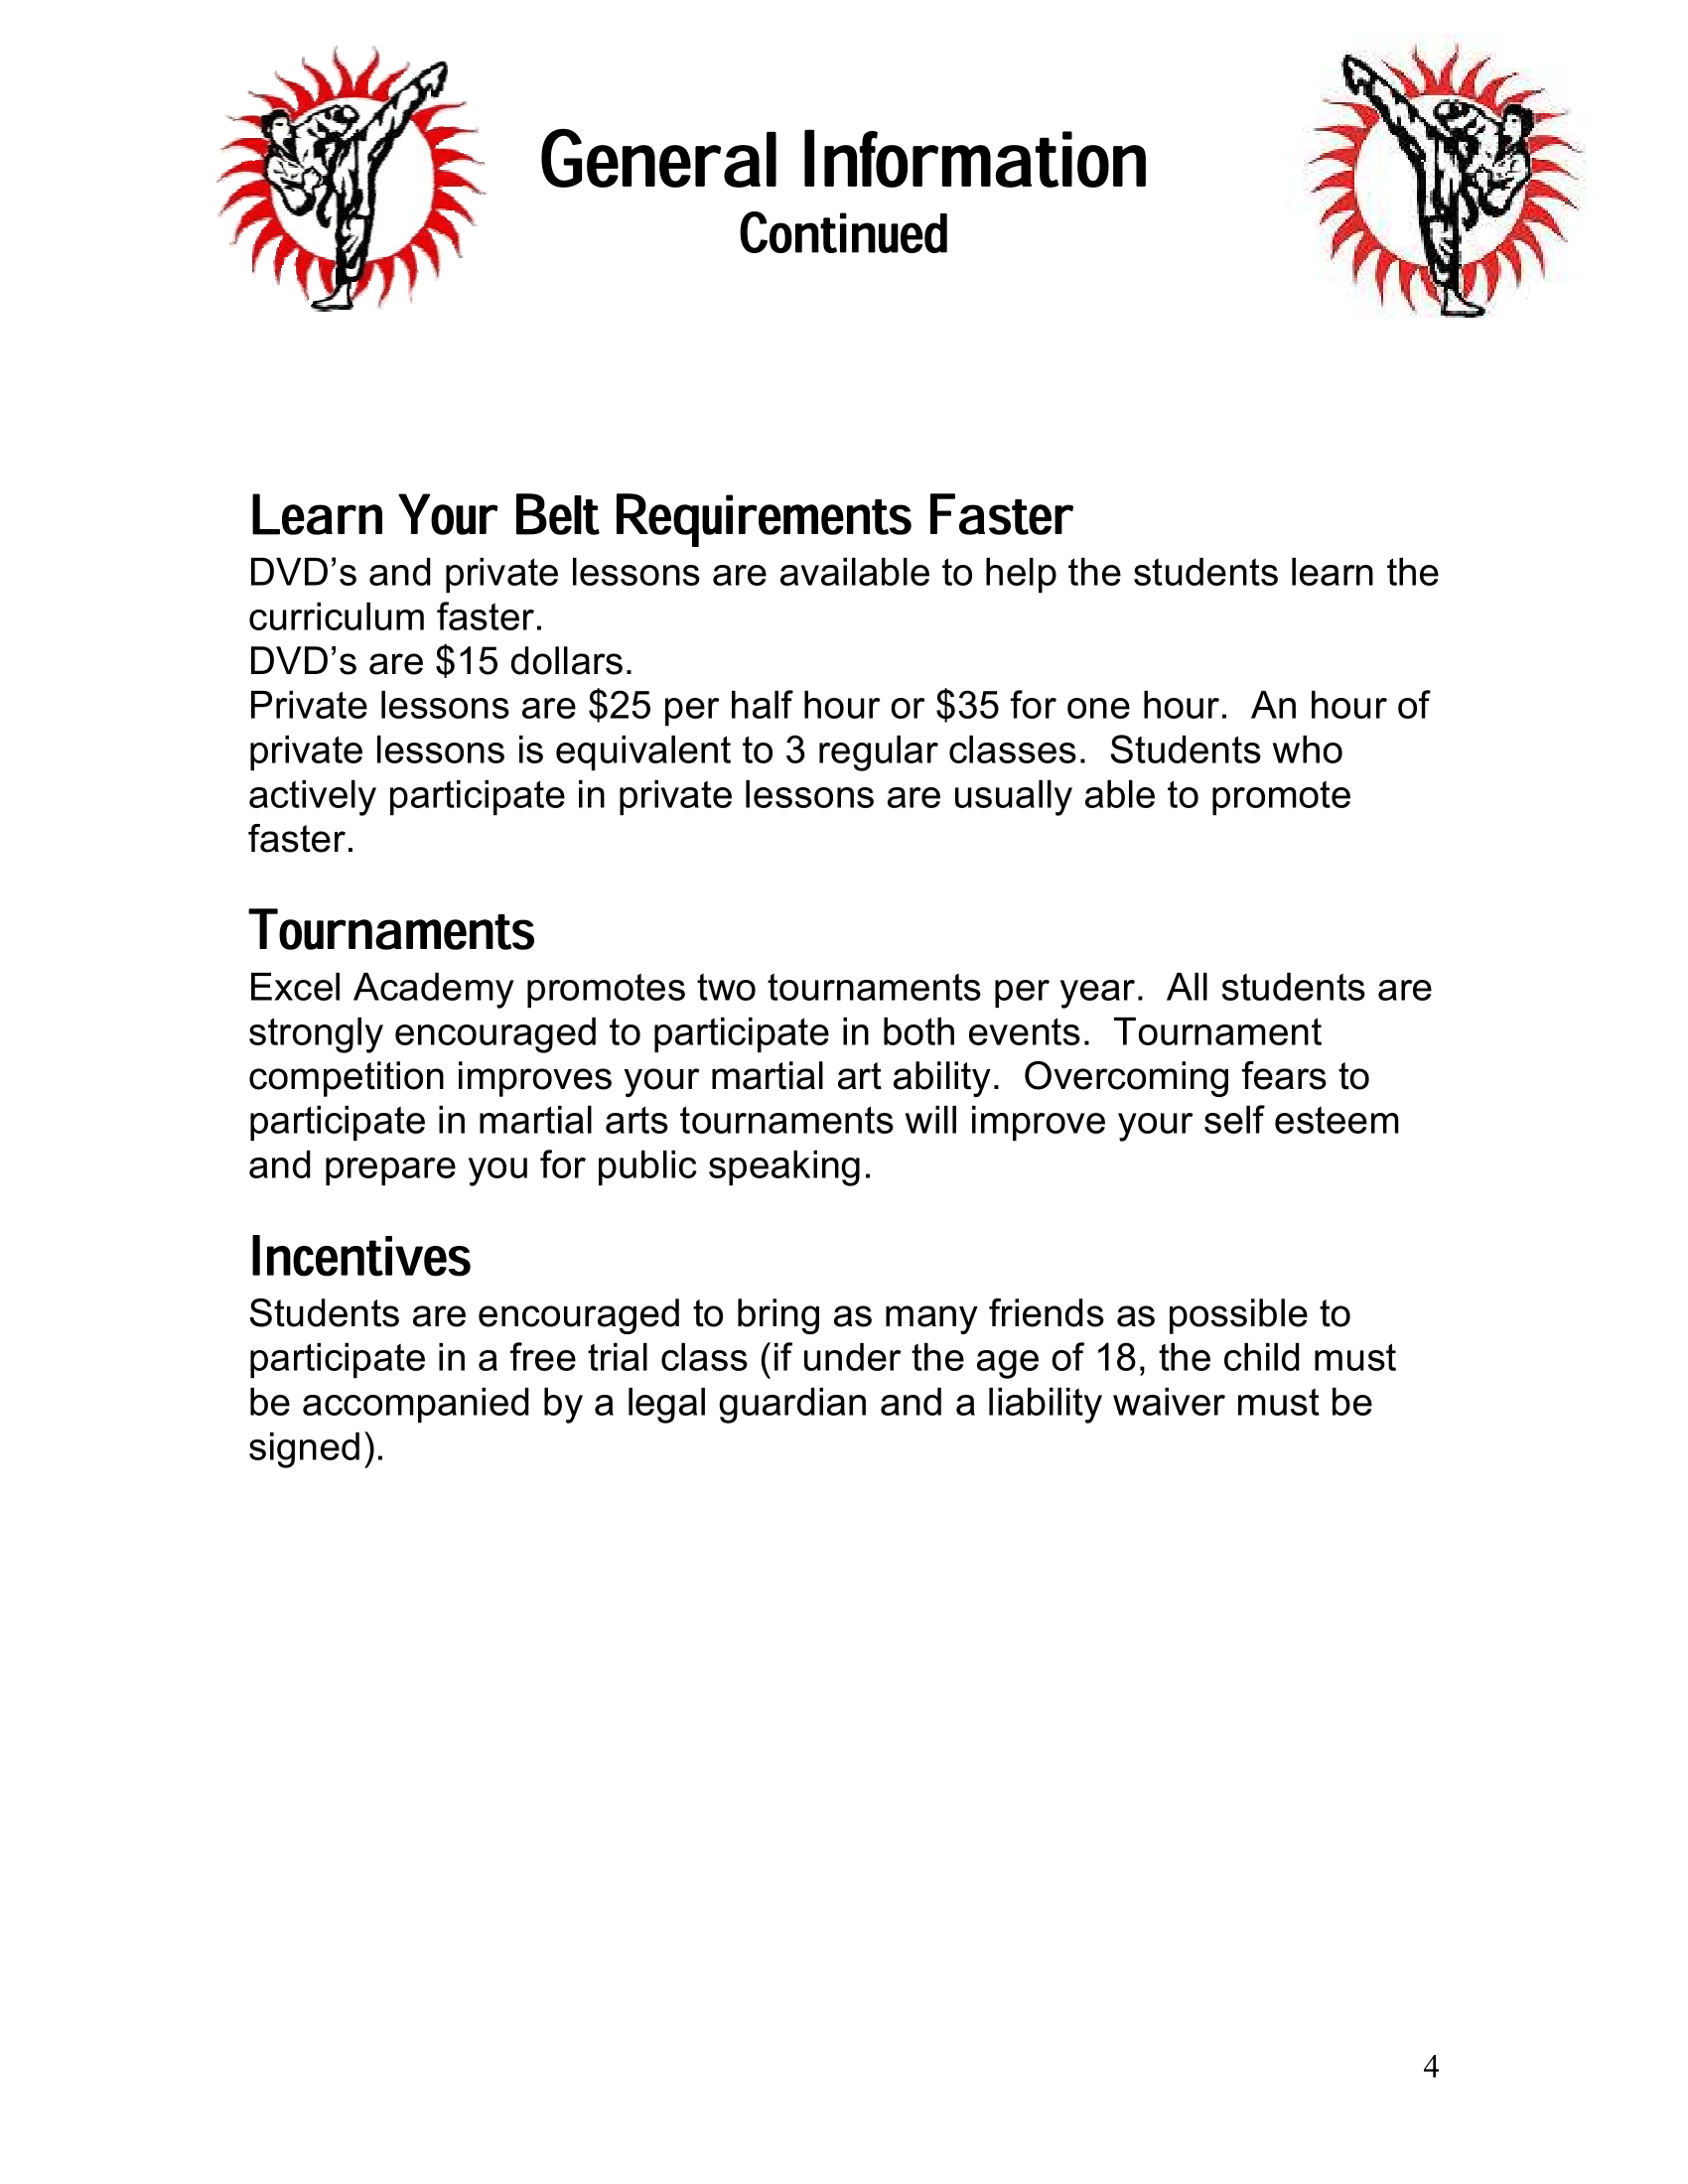 Page 4 of the Excel Academy Student Handbook